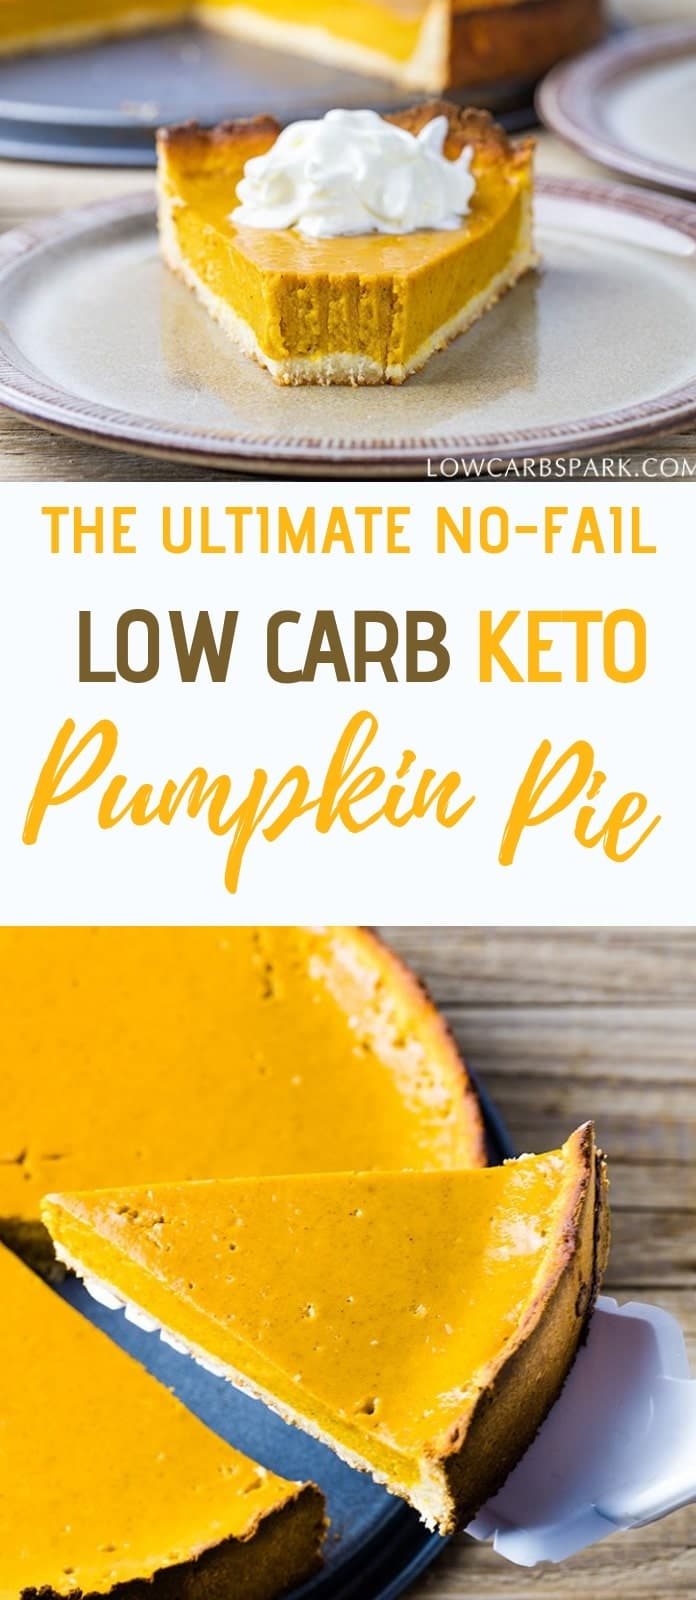 The Best No Fail Keto Low Carb Pumpkin Pie Recipe. Learn how to make this festive #ketodessert from scratch. Delicious low carb #pumpkin pie that is #sugarfree and #keto. | via @lowcarbspark